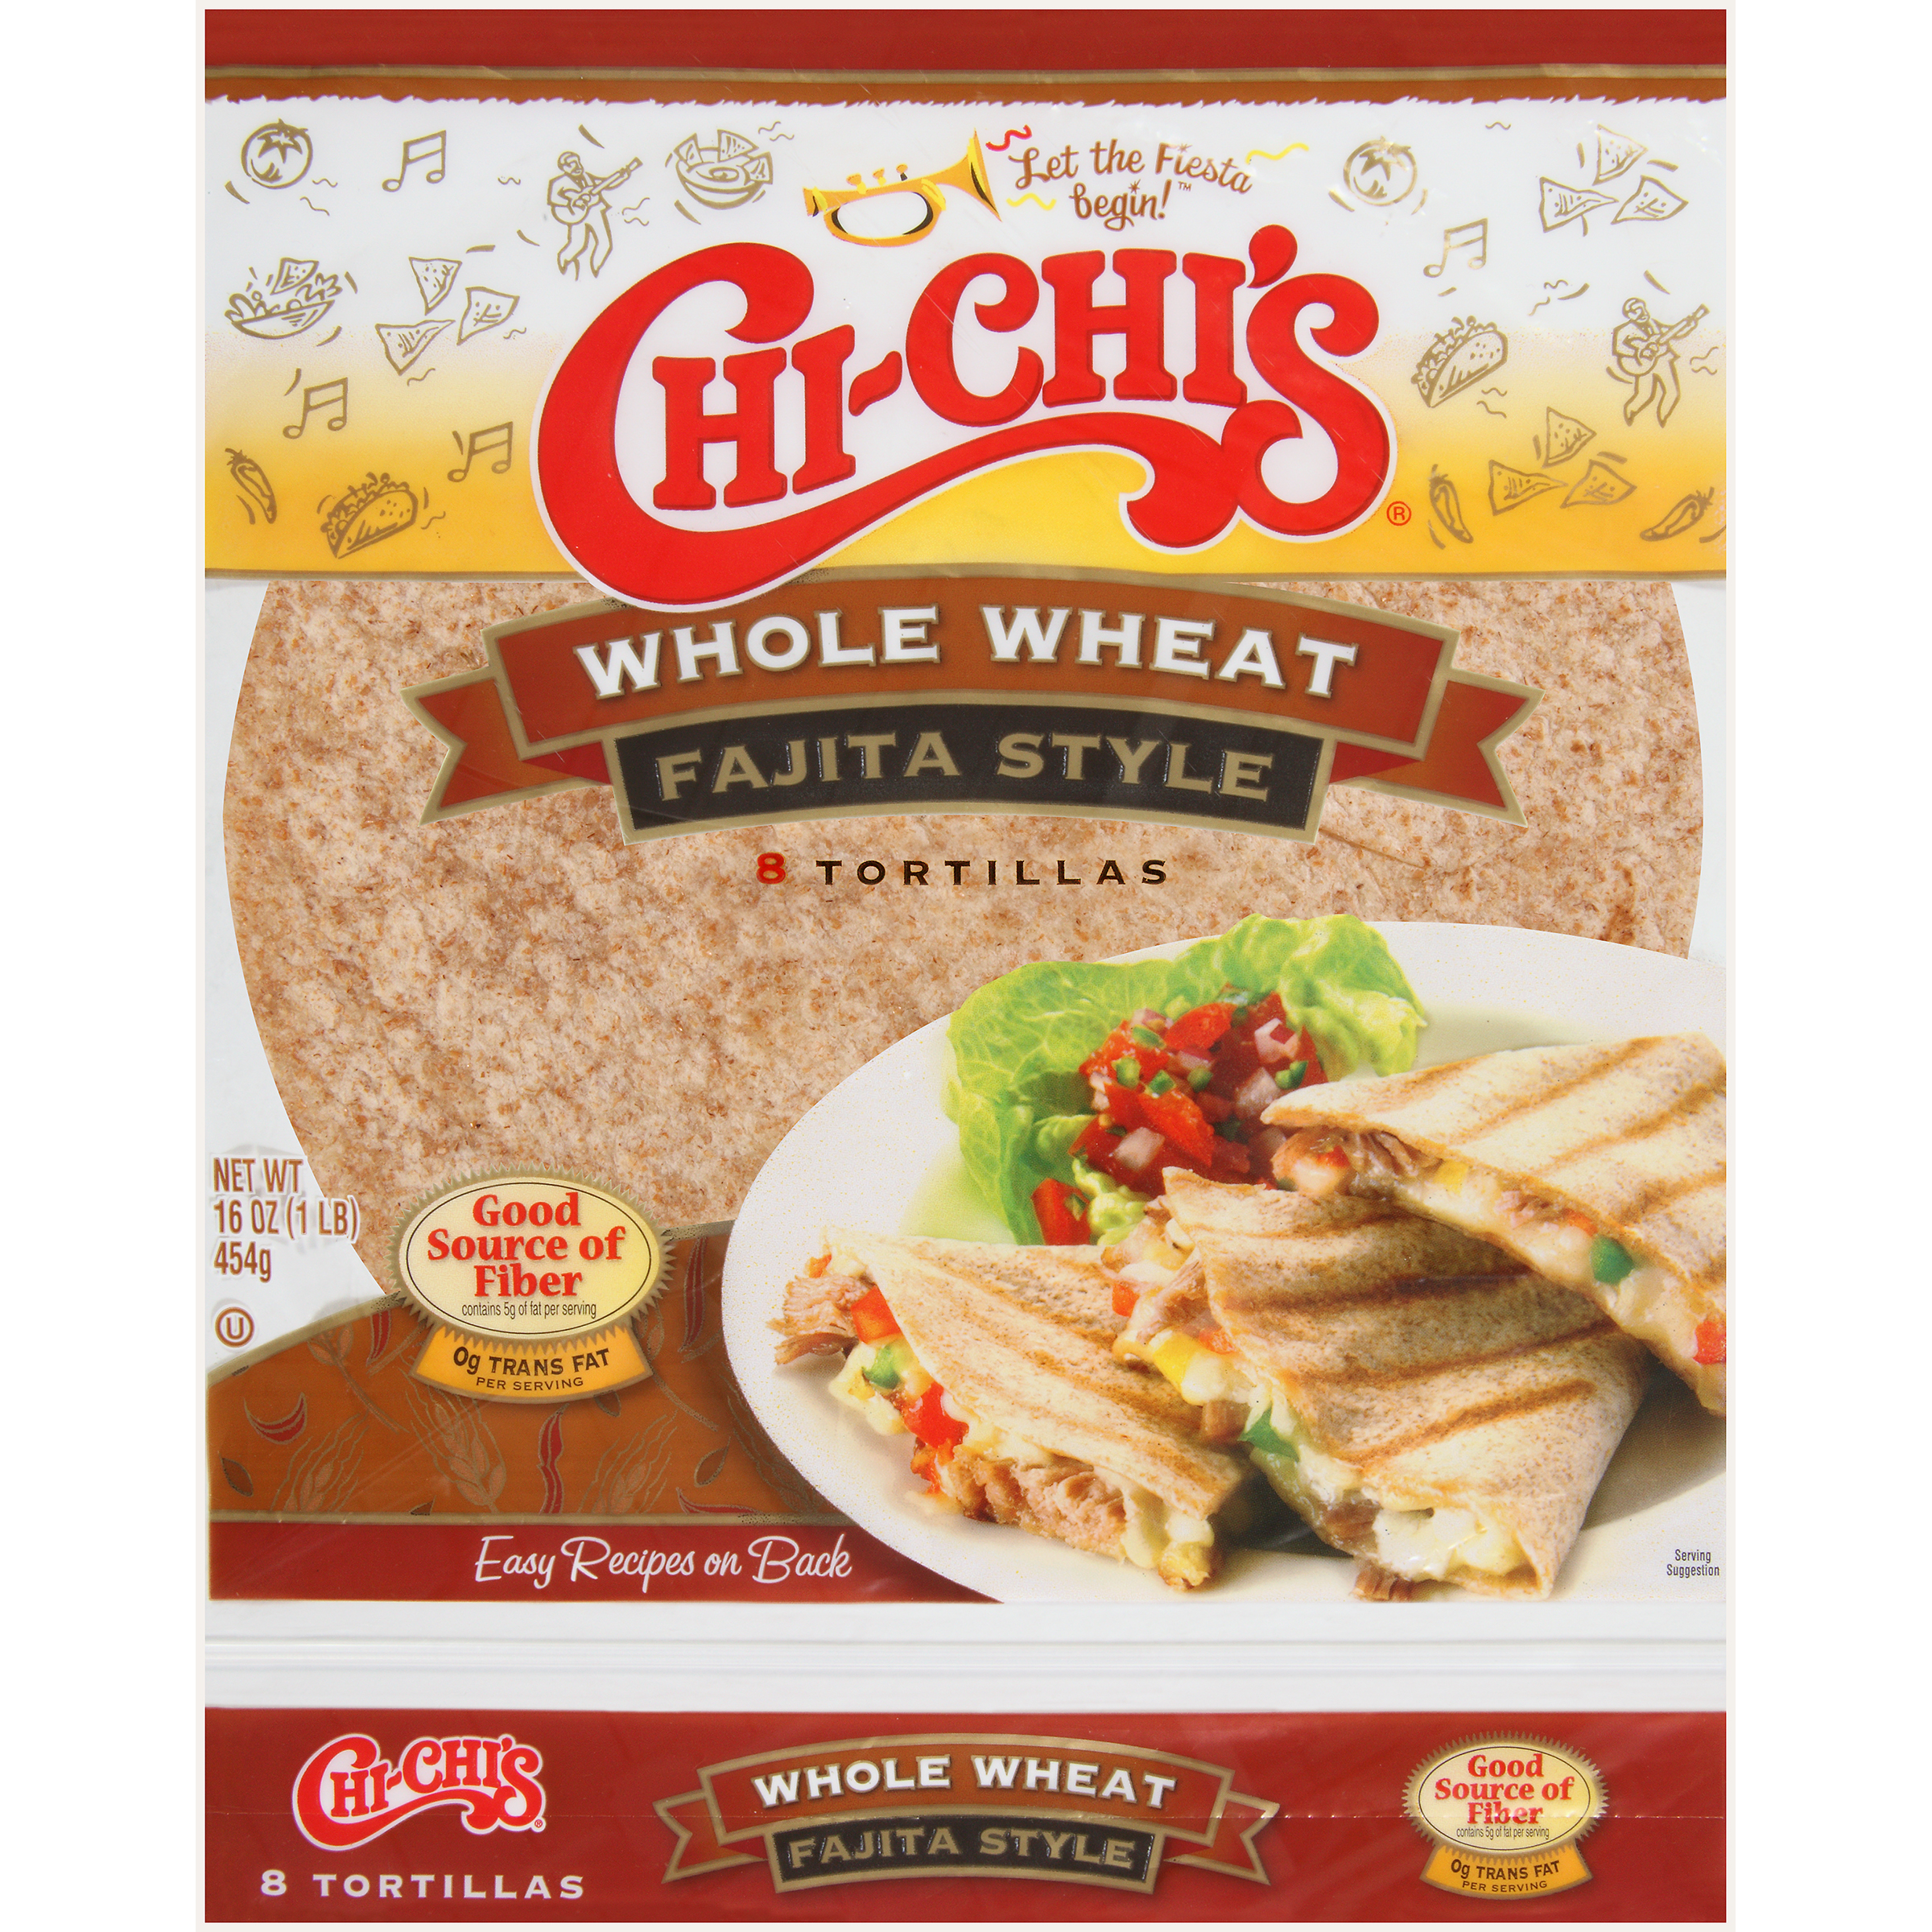 Chi-Chi's Whole Wheat Tortillas Fajita Style 8 CT by Hormel Food Sales, LLC